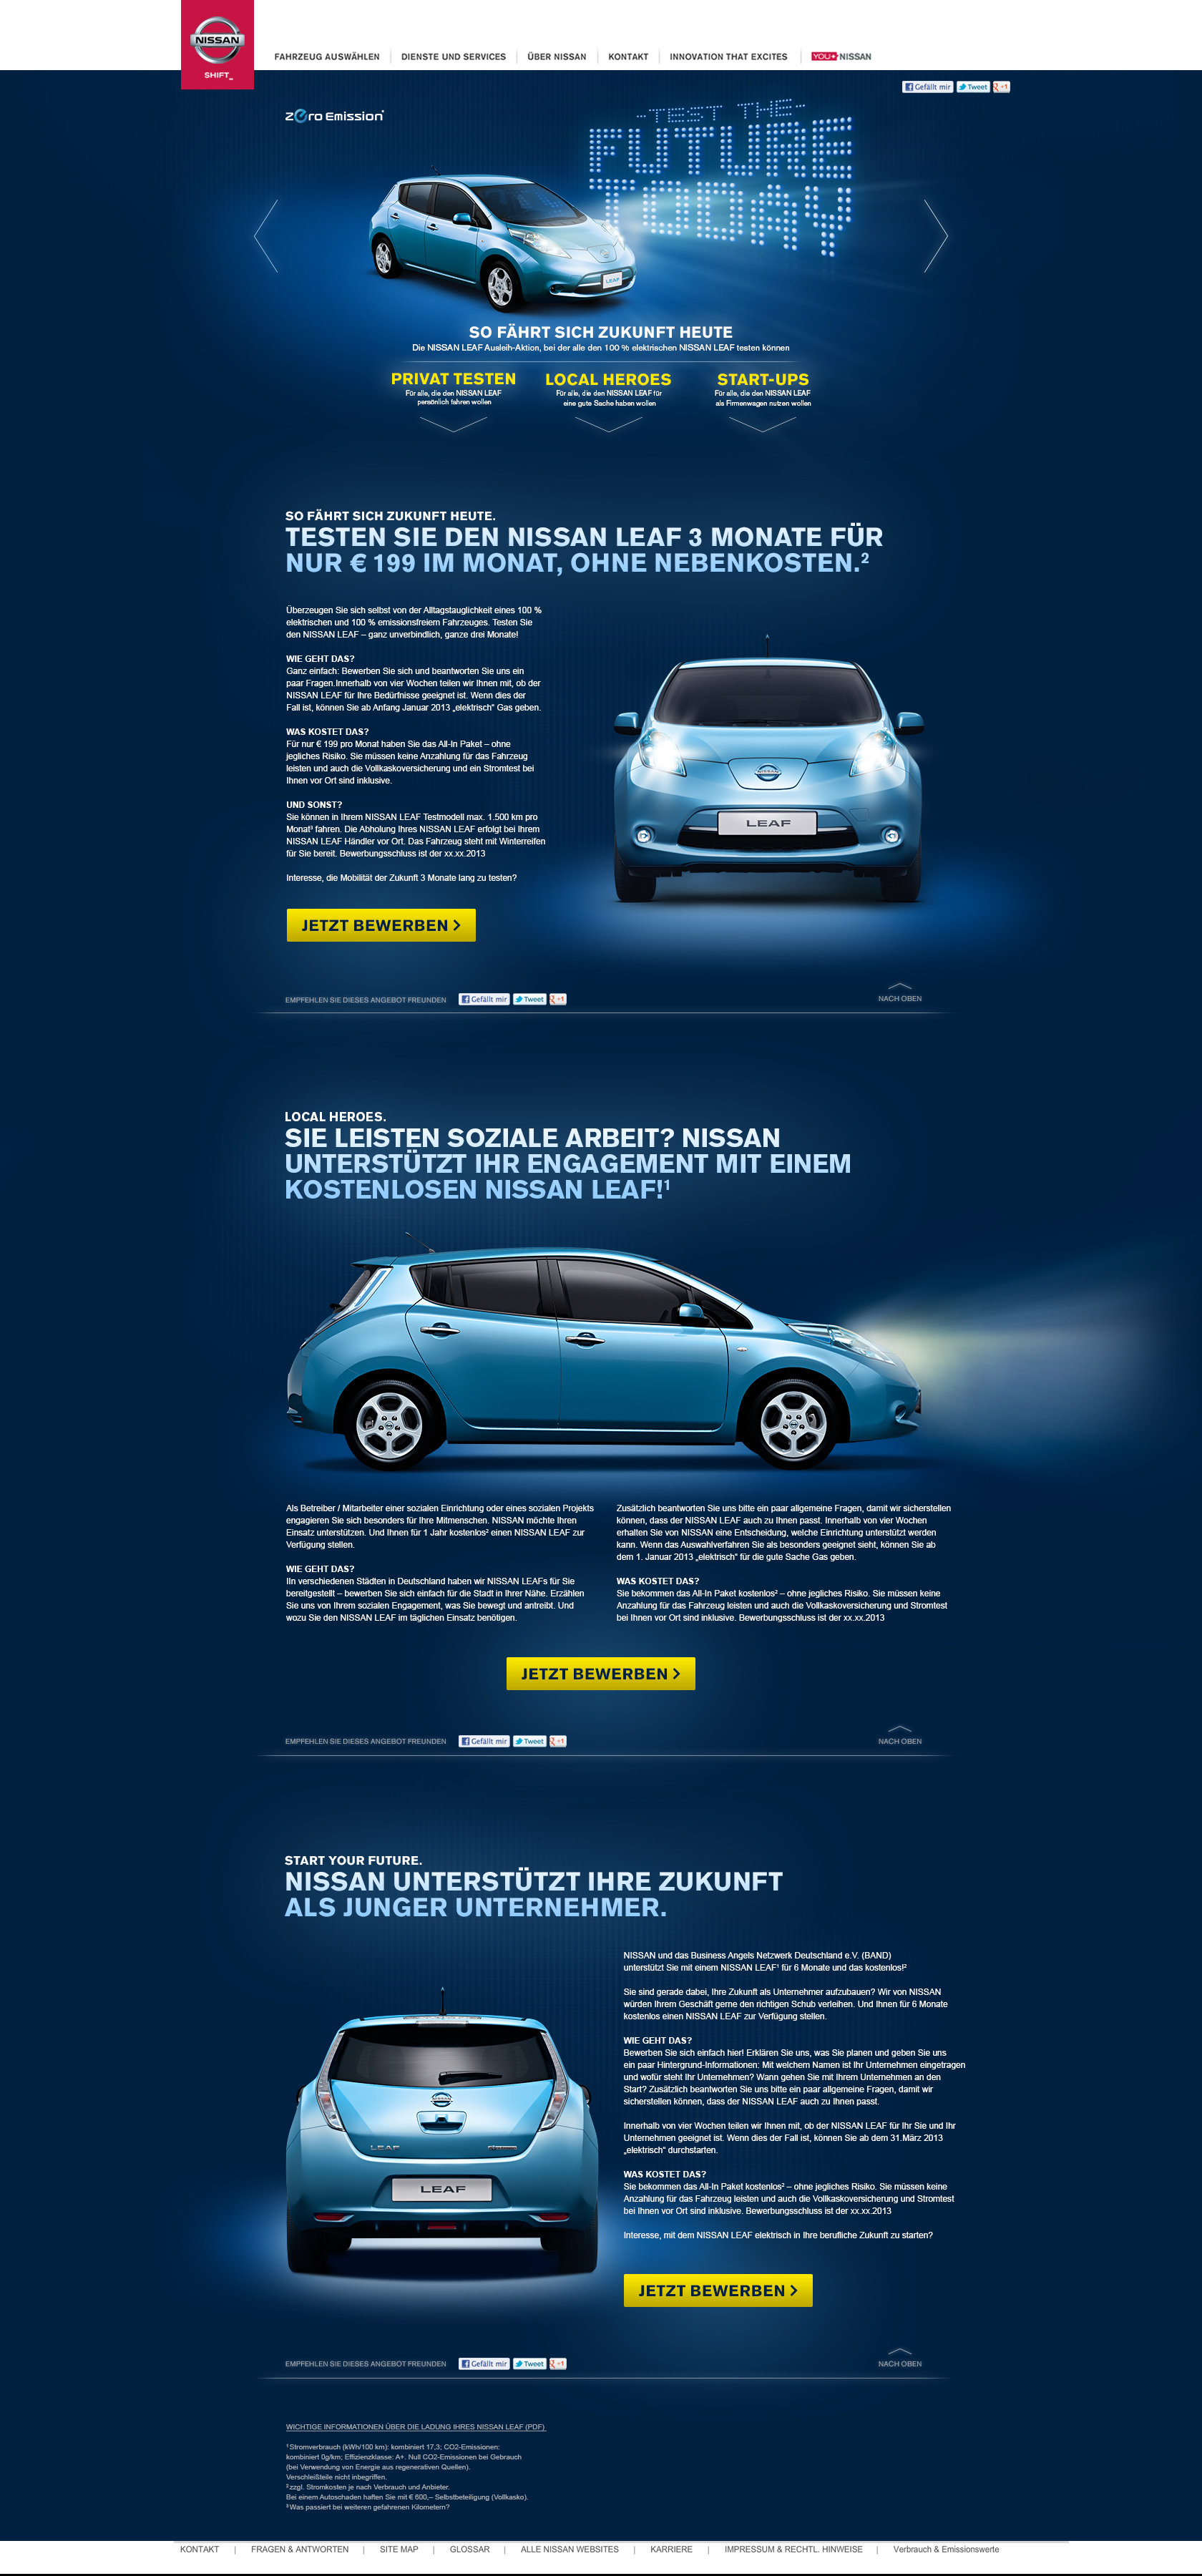 NISSAN_80LEAFS_MicrositeForm1680px_0000_normal state